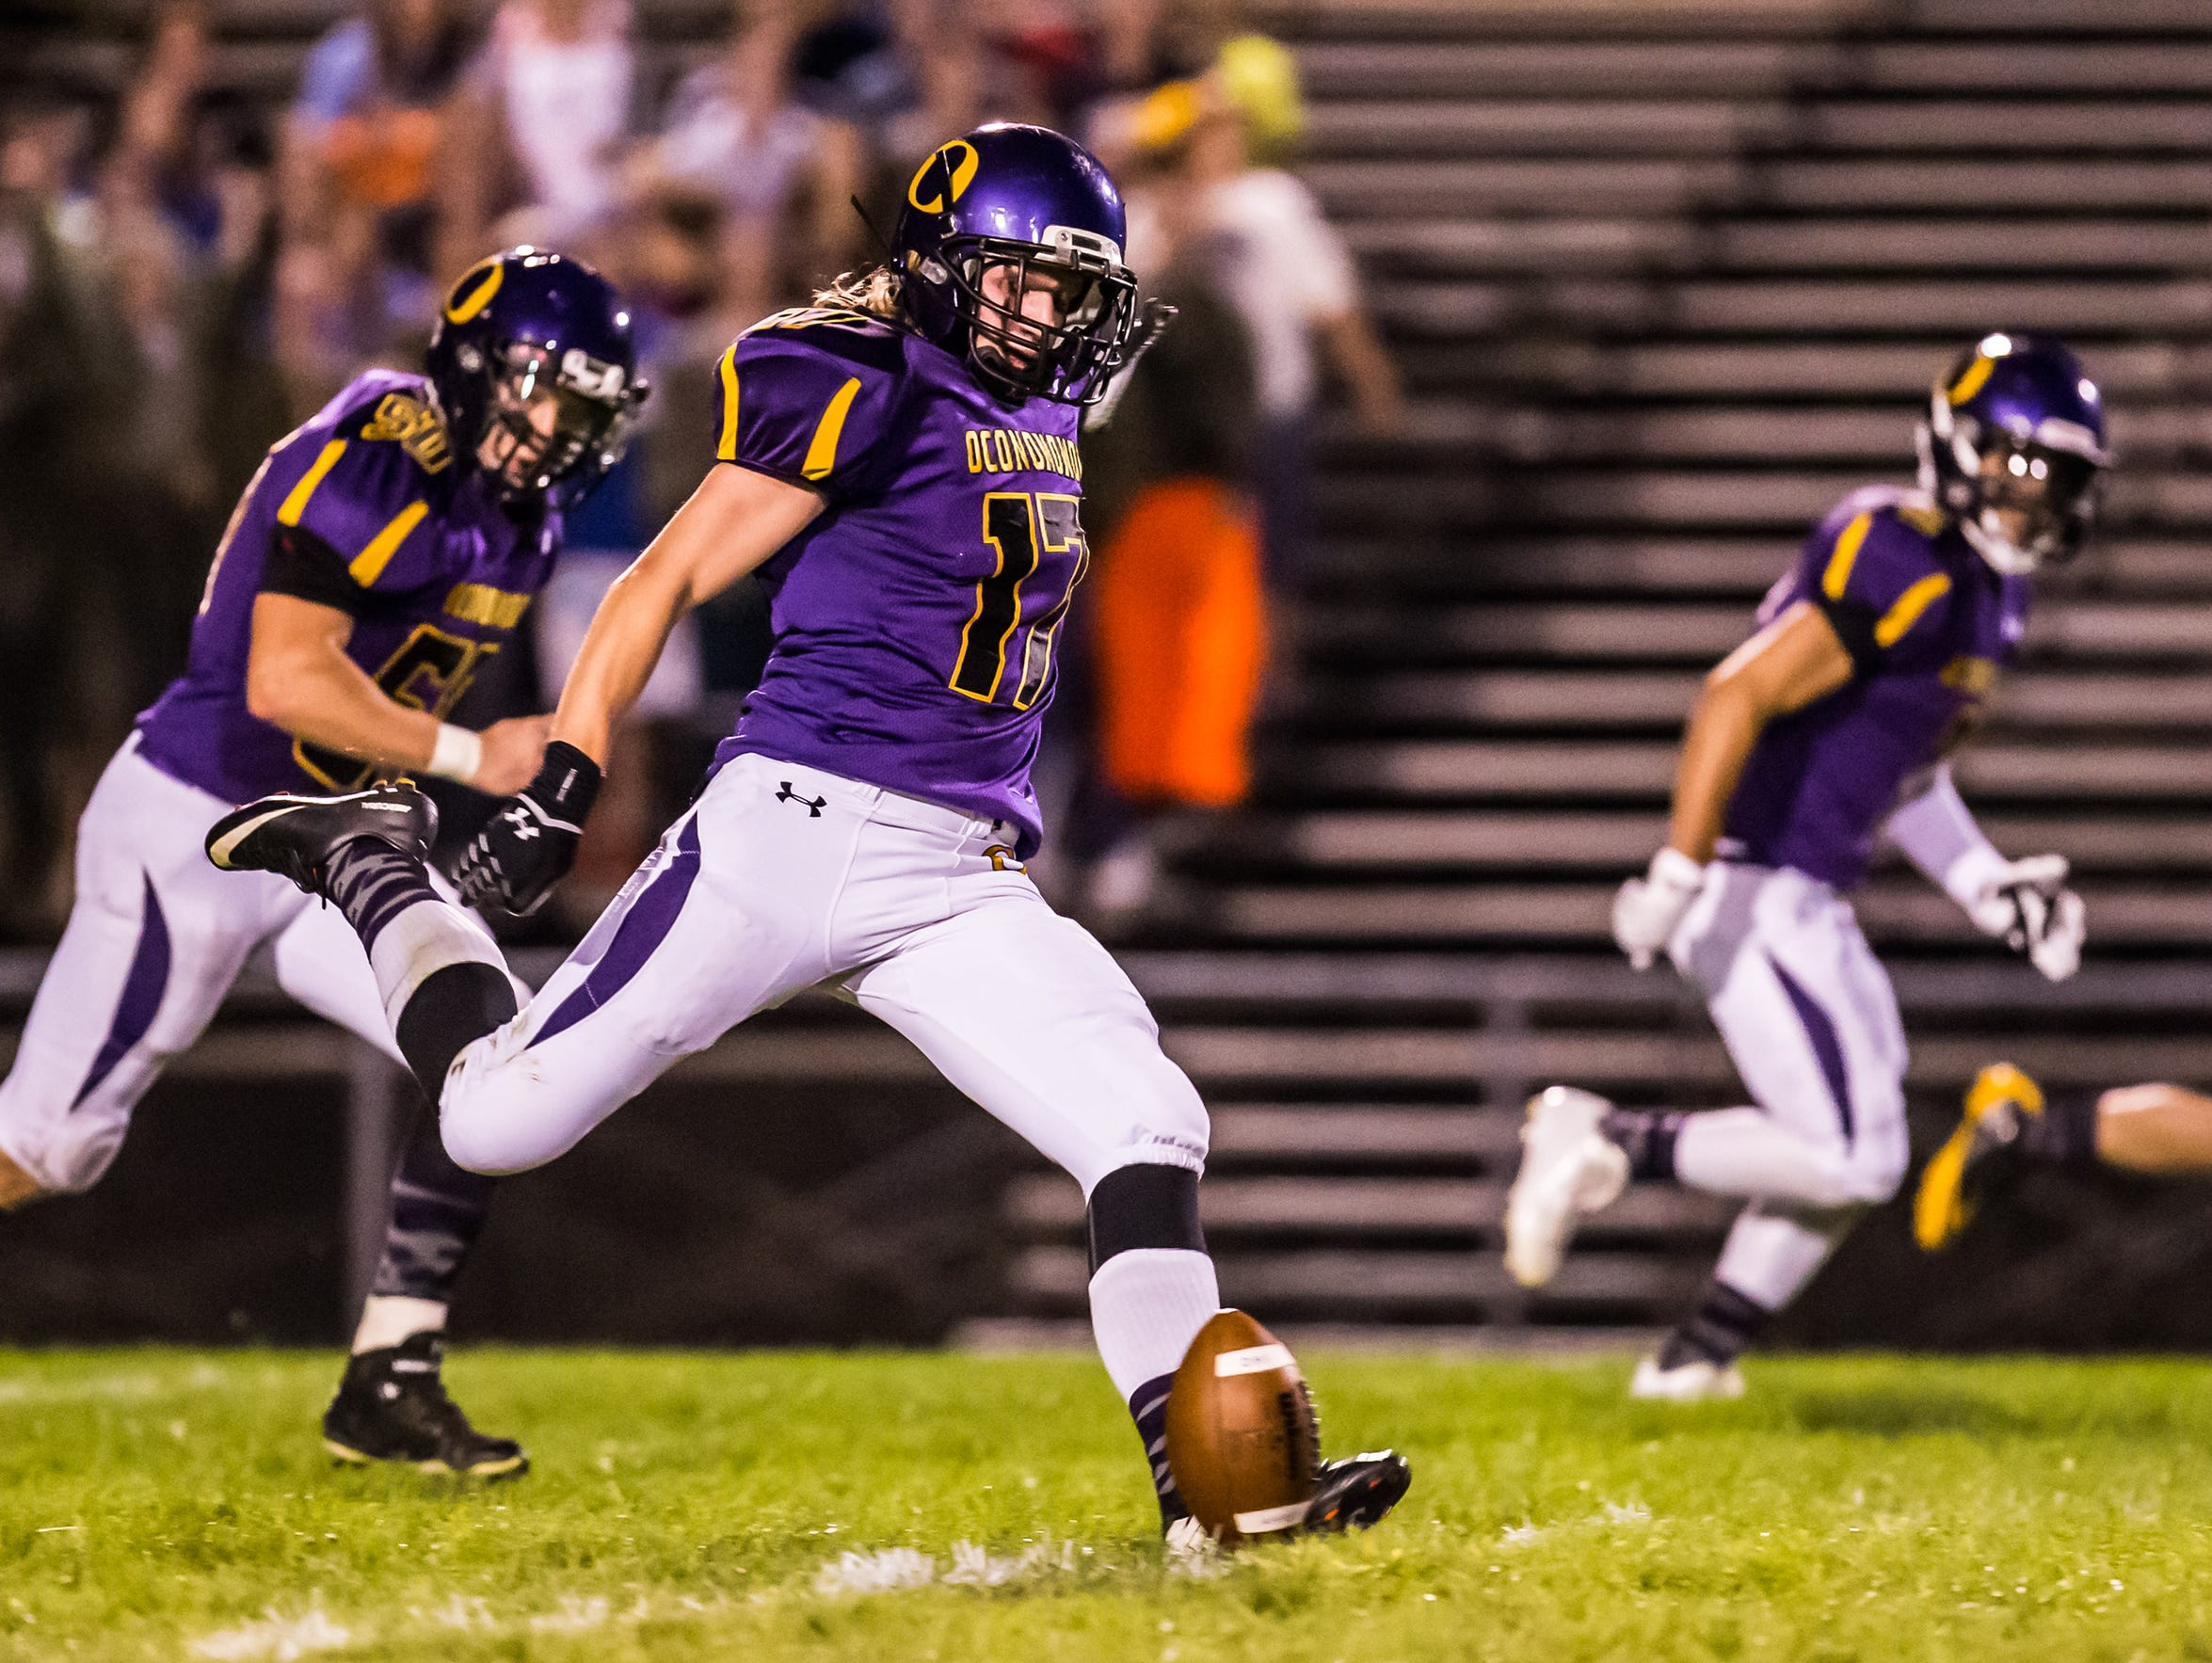 Oconomowoc kicker Casey Bednarski (17) kicks off during